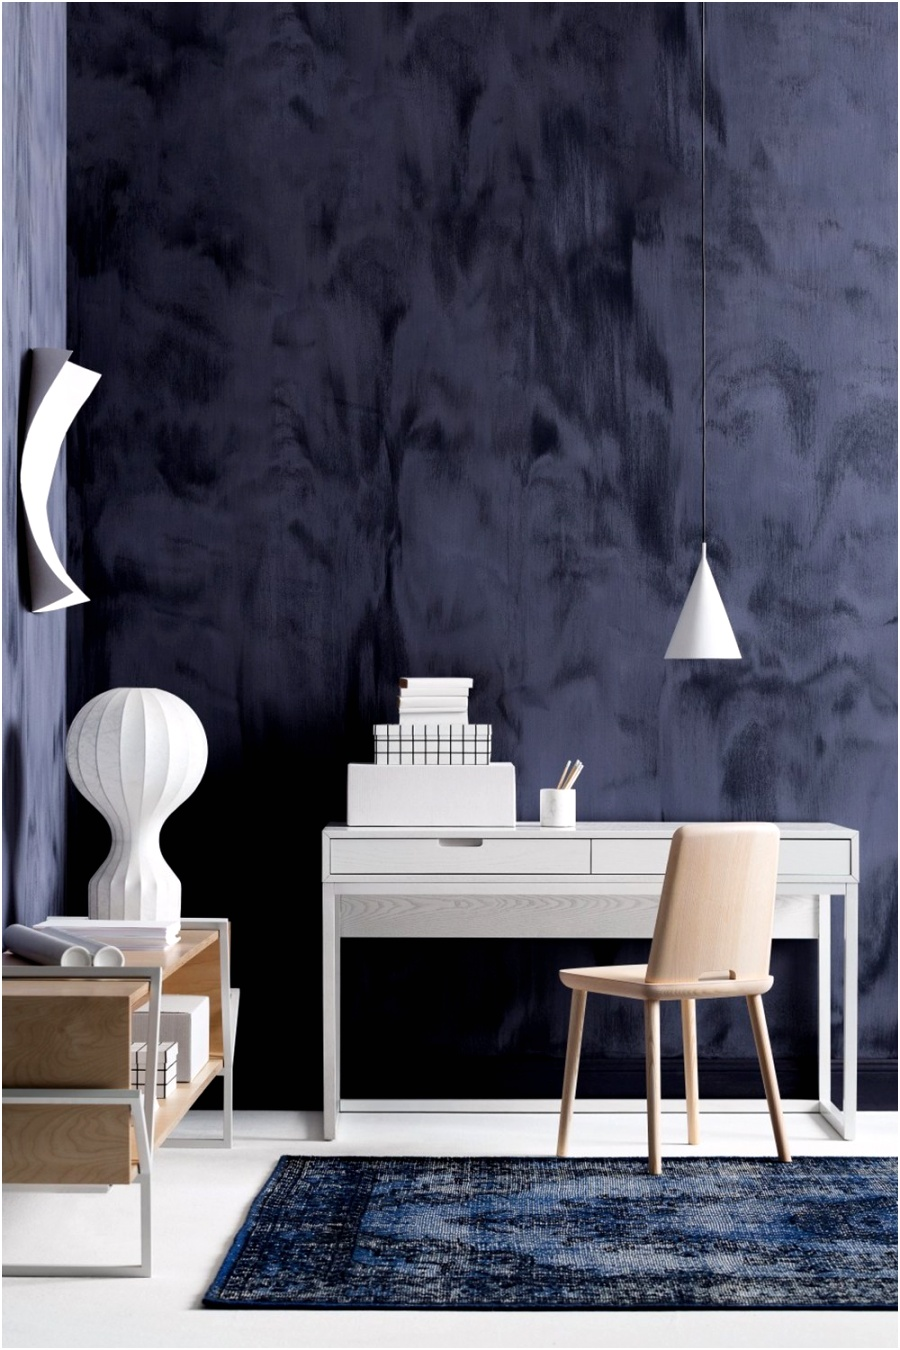 Haymes Paint Gravity blue paint in office 35 ideas for blue wall colour home decoration AlizsWonderland